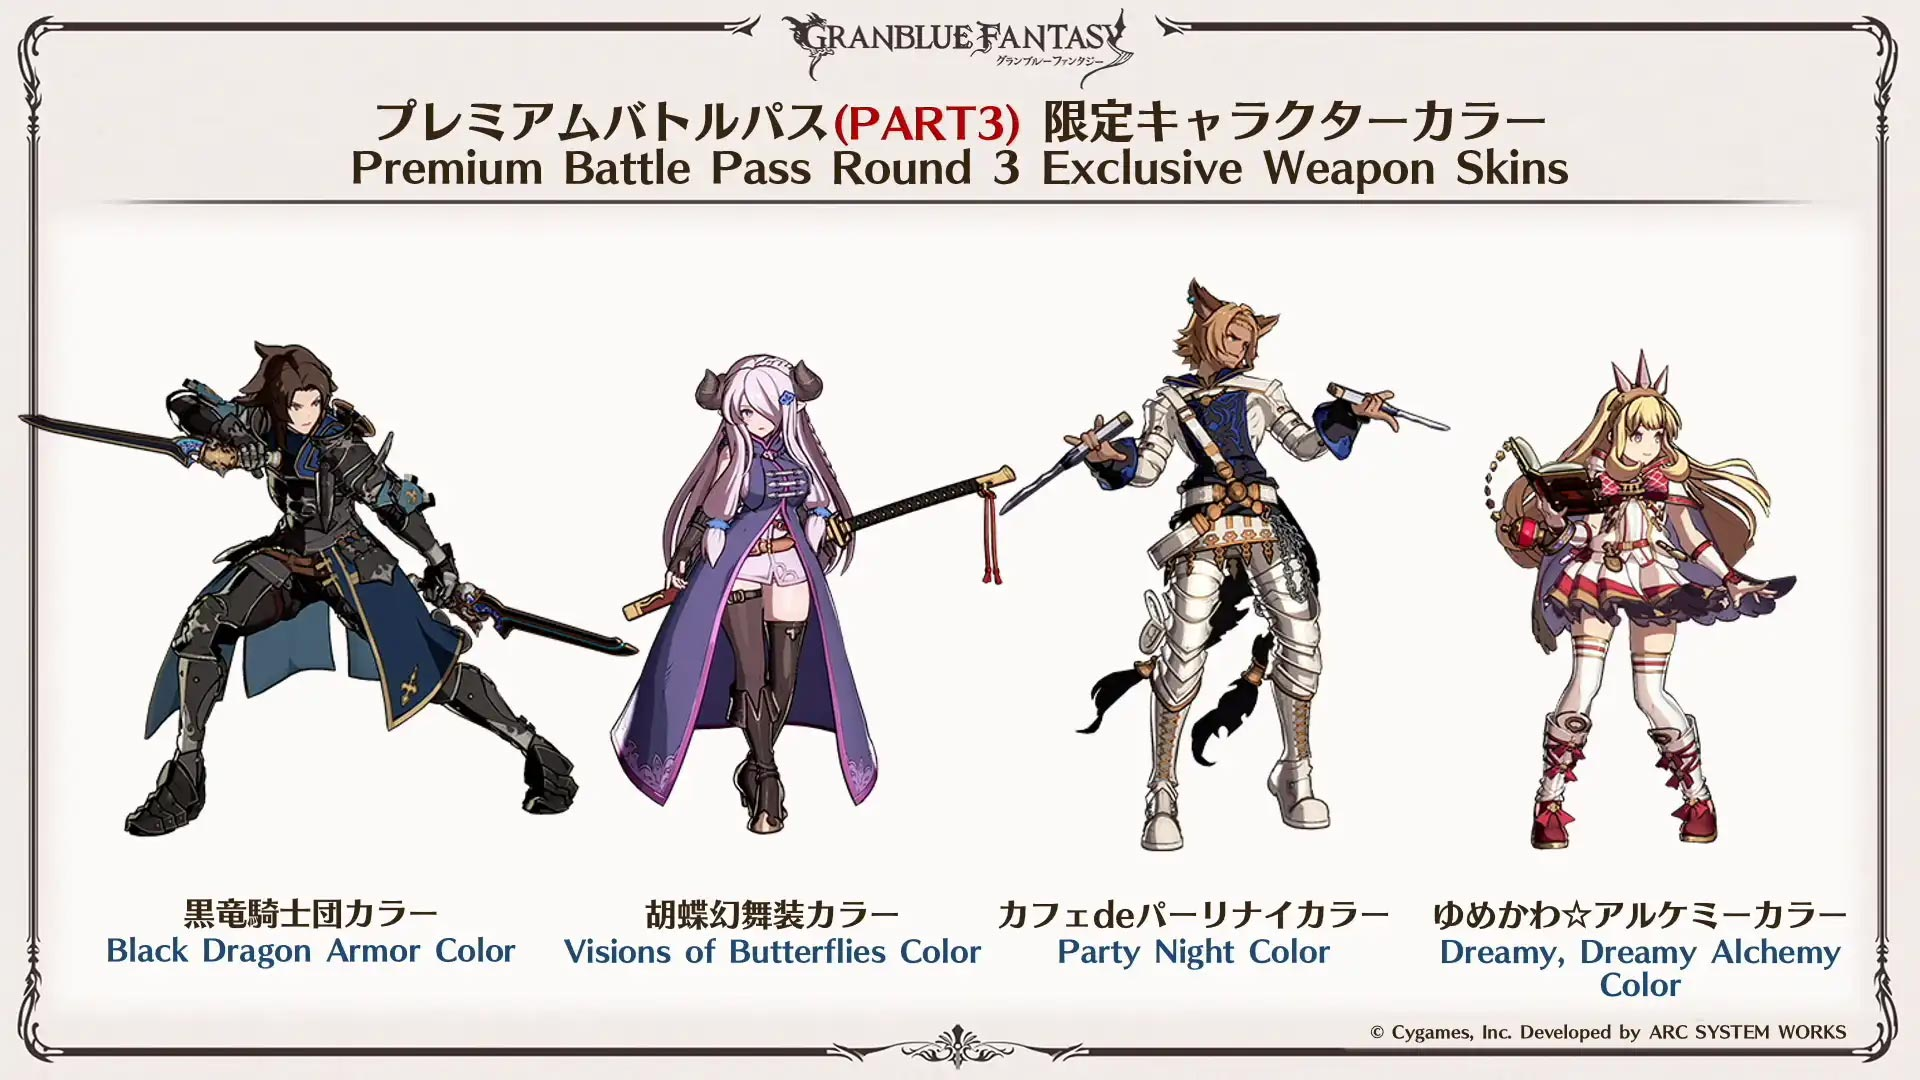 Granblue Fantasy Versus Eustace Reveal Trailer Gallery 11 out of 11 image gallery